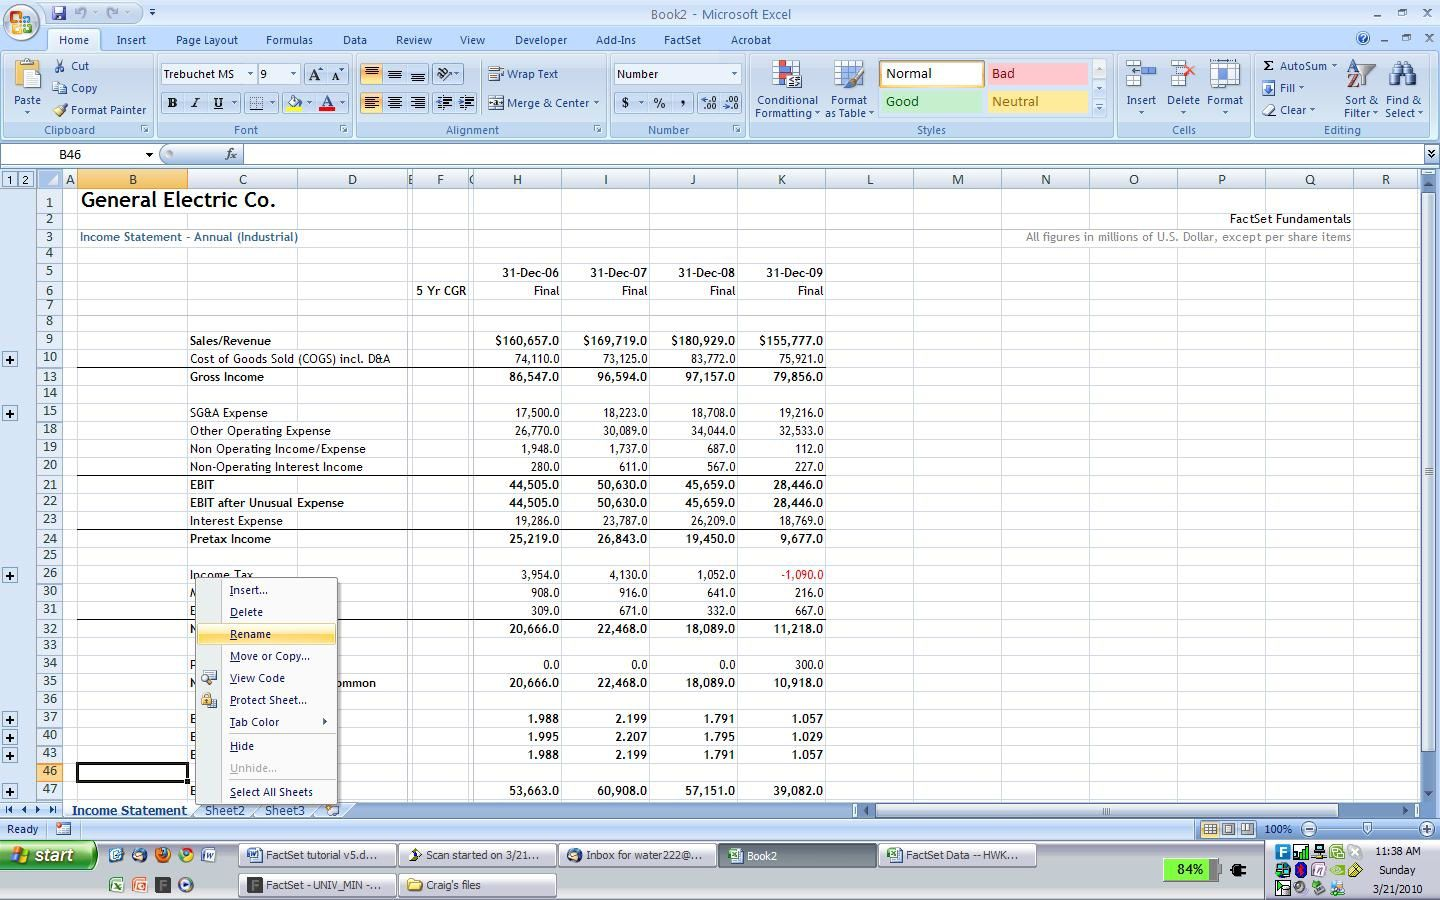 007 Singular Income Statement Format Excel Free Download Image  MonthlyFull